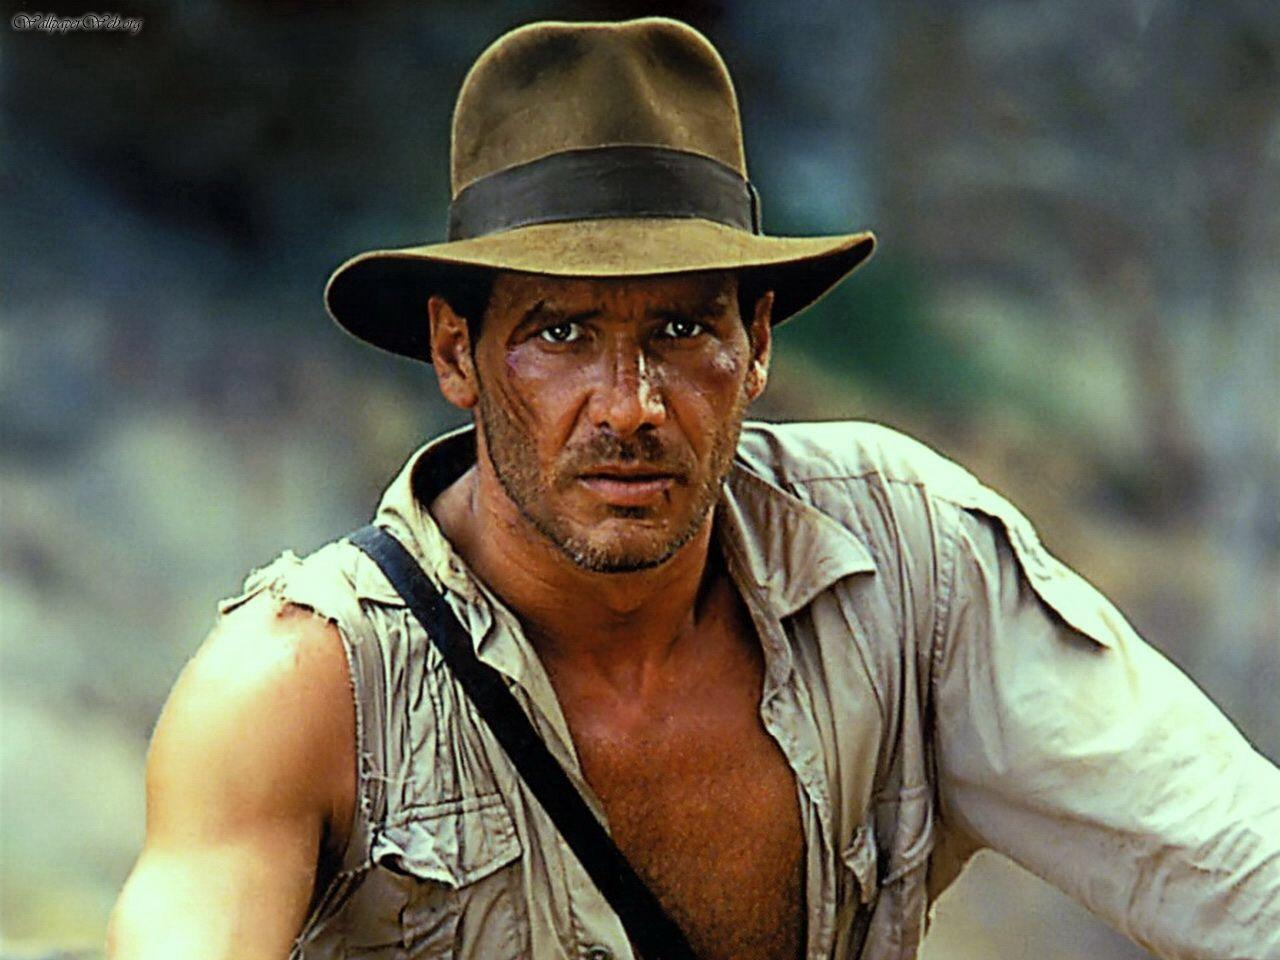 Which Indiana Jones movie is your favorite?